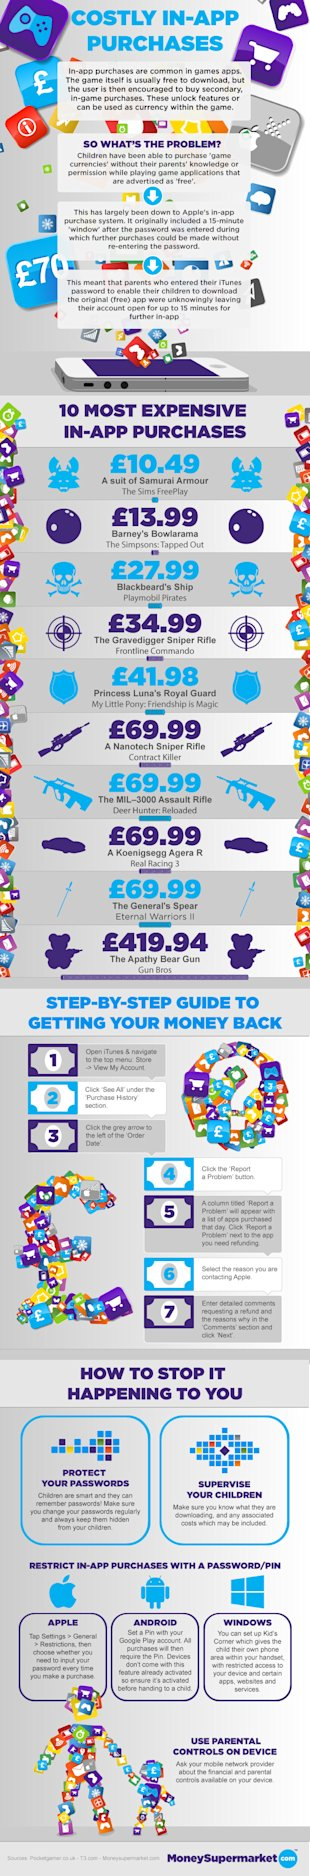 Costly In App Purchases [Infographic] image Costly InApp Purchases Infographic1